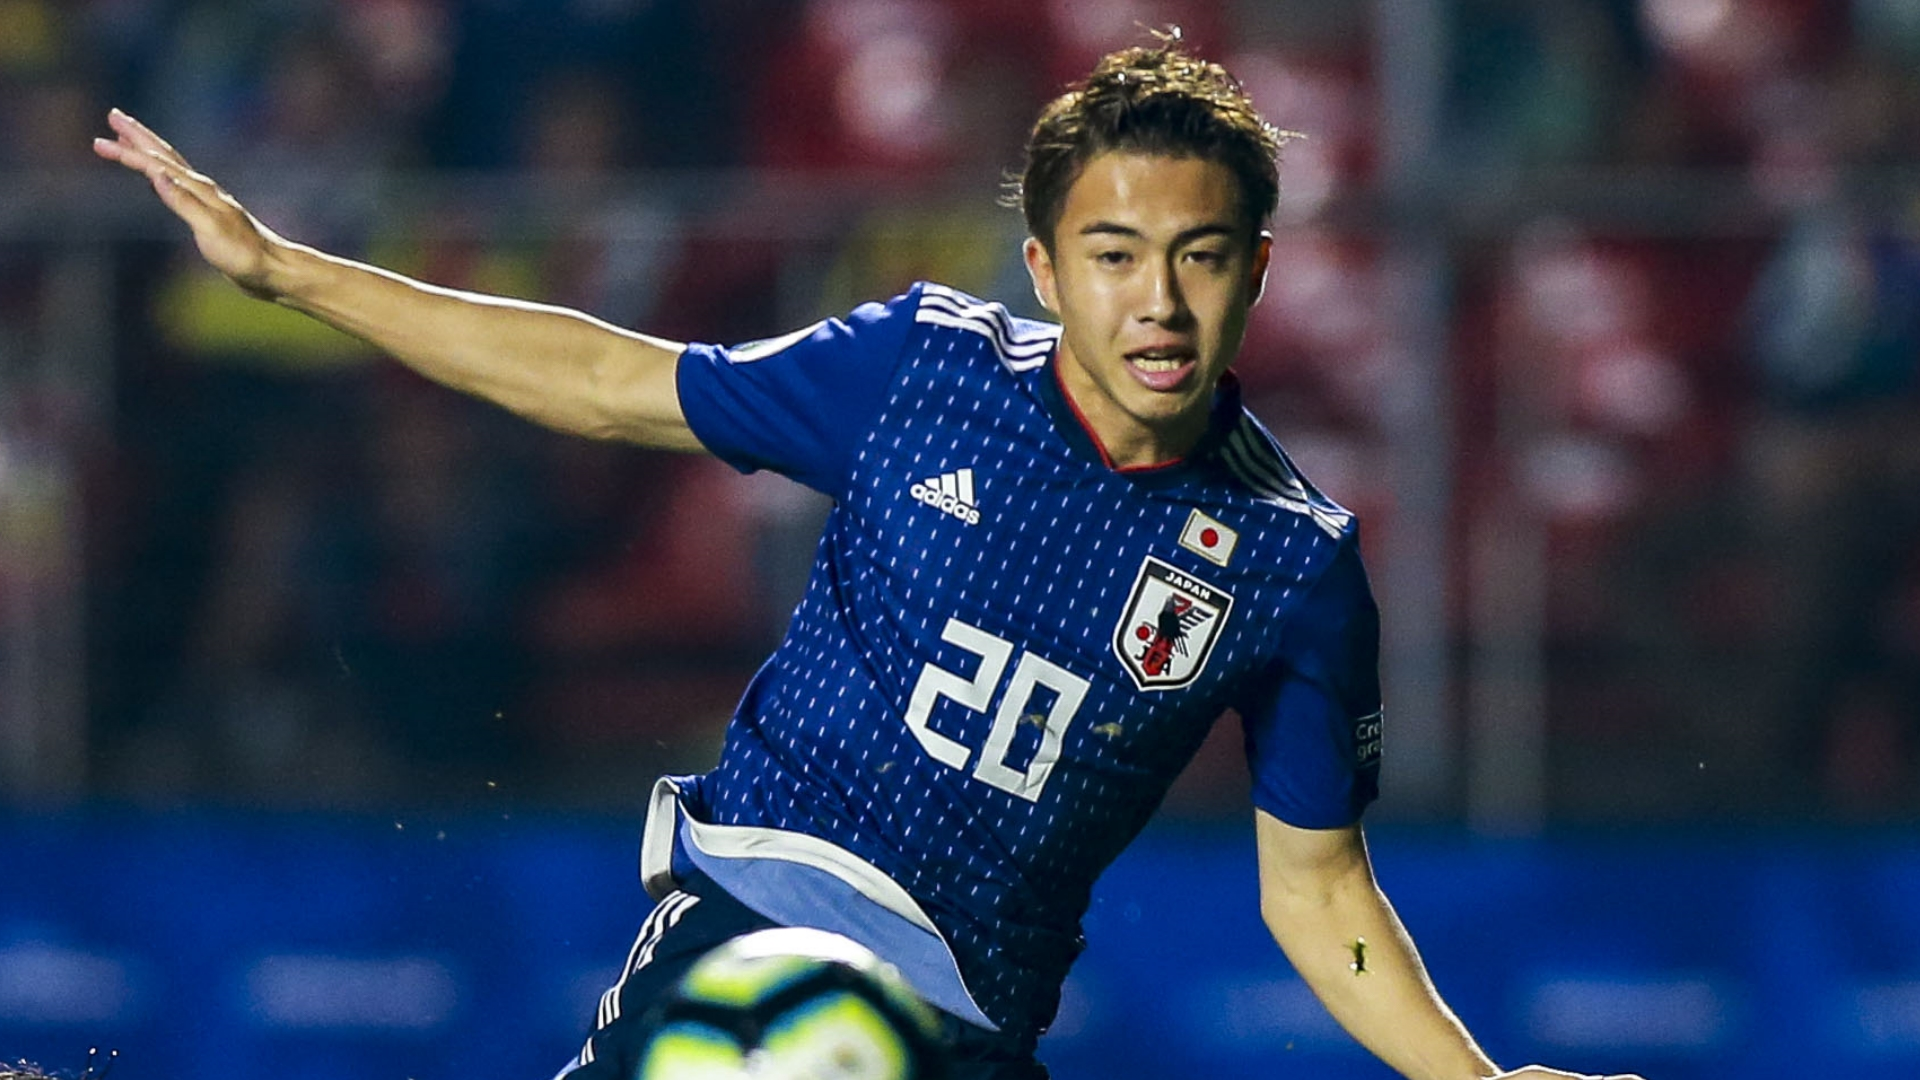 Barcelona agree deal to sign Japanese starlet Abe from Kashima Antlers